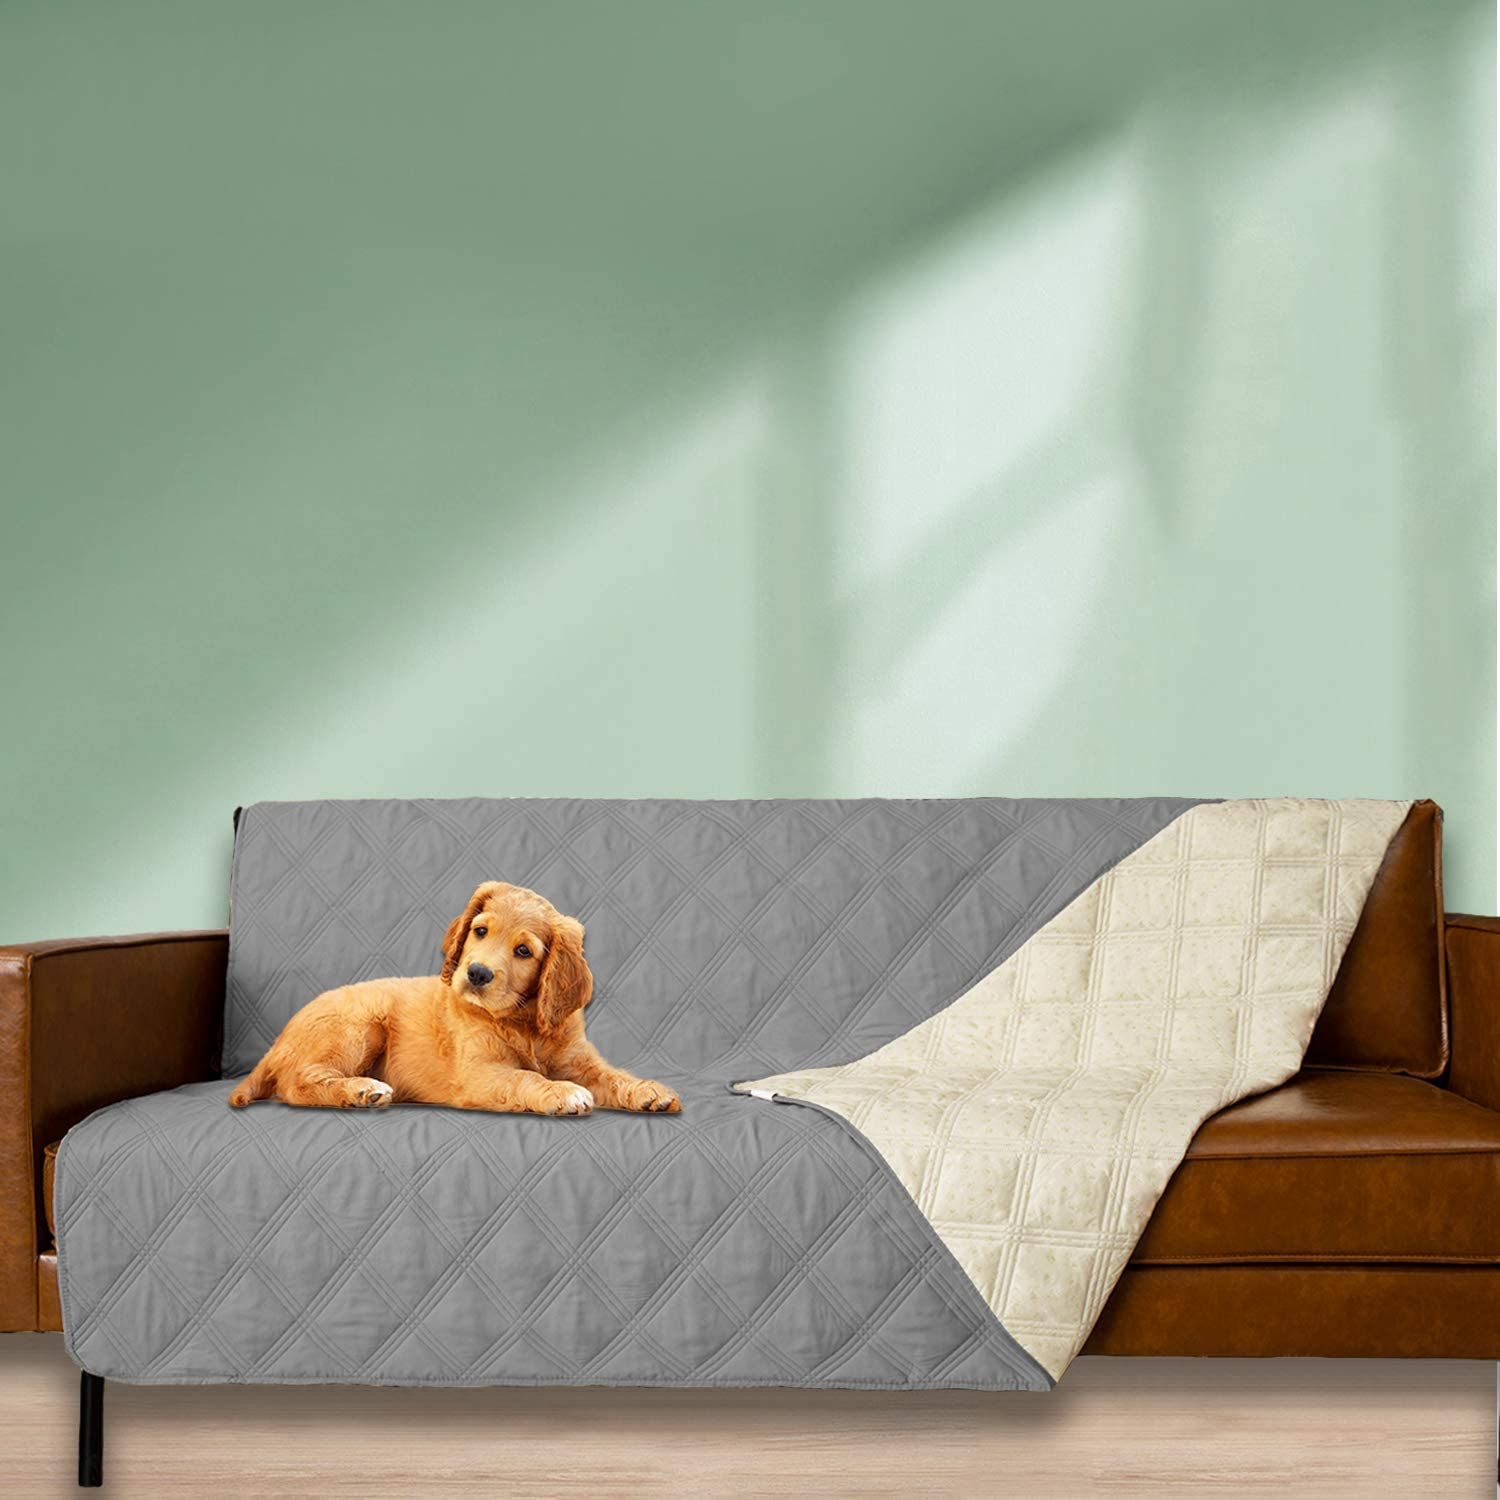 52x82 in,Greyish Green Easy-Going 100/% Waterproof Dog Bed Cover Furniture Protector Sofa Cover Non-Slip Washable Reusable Incontinence Bed Underpads for Pets Kids Children Dog Cat